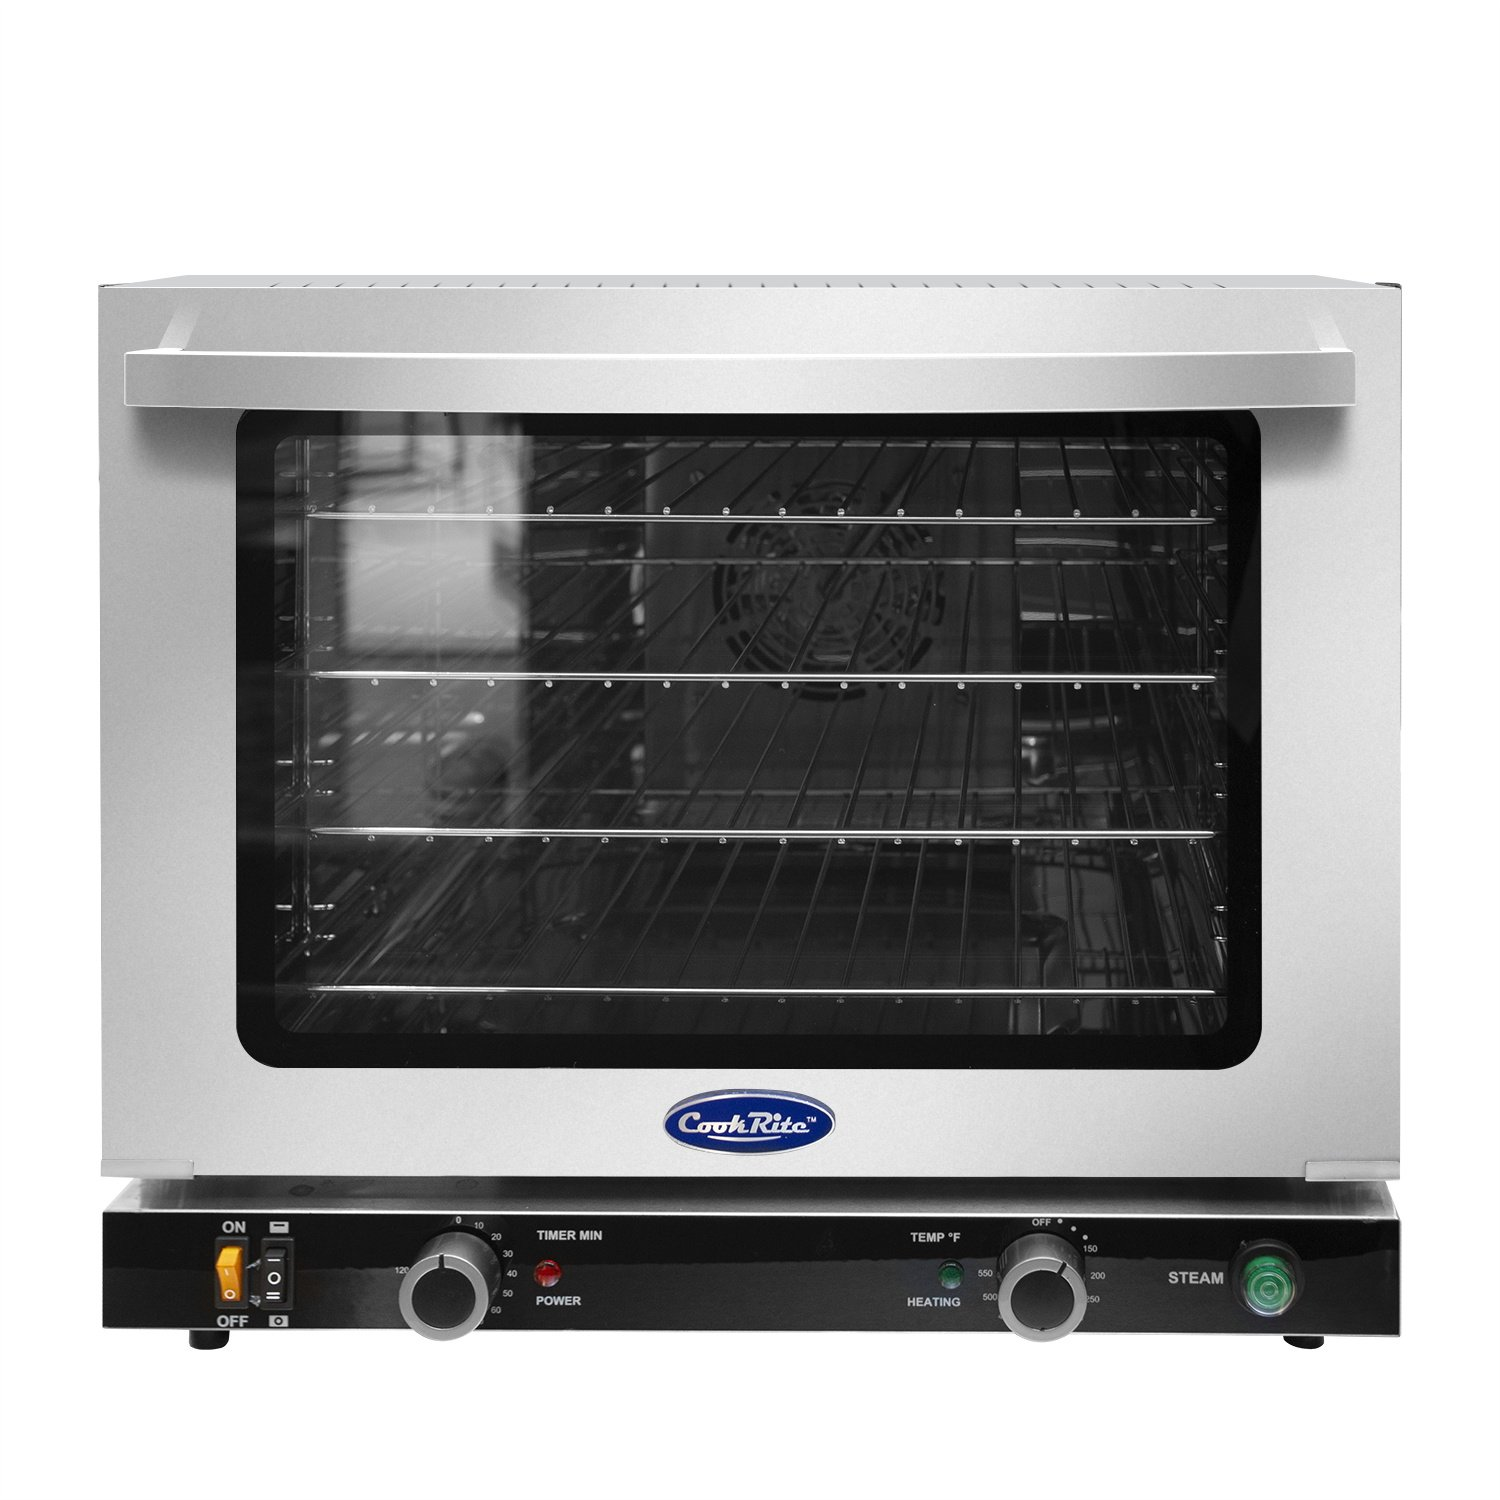 Commercial Electric Convection Oven,COOKRITE CRCC-50S Commercial Medium Electric Countertop Convection Oven Stainless Steel Top Browning Element Moisture Injection Function Compact Toaster 1/2 Shelves